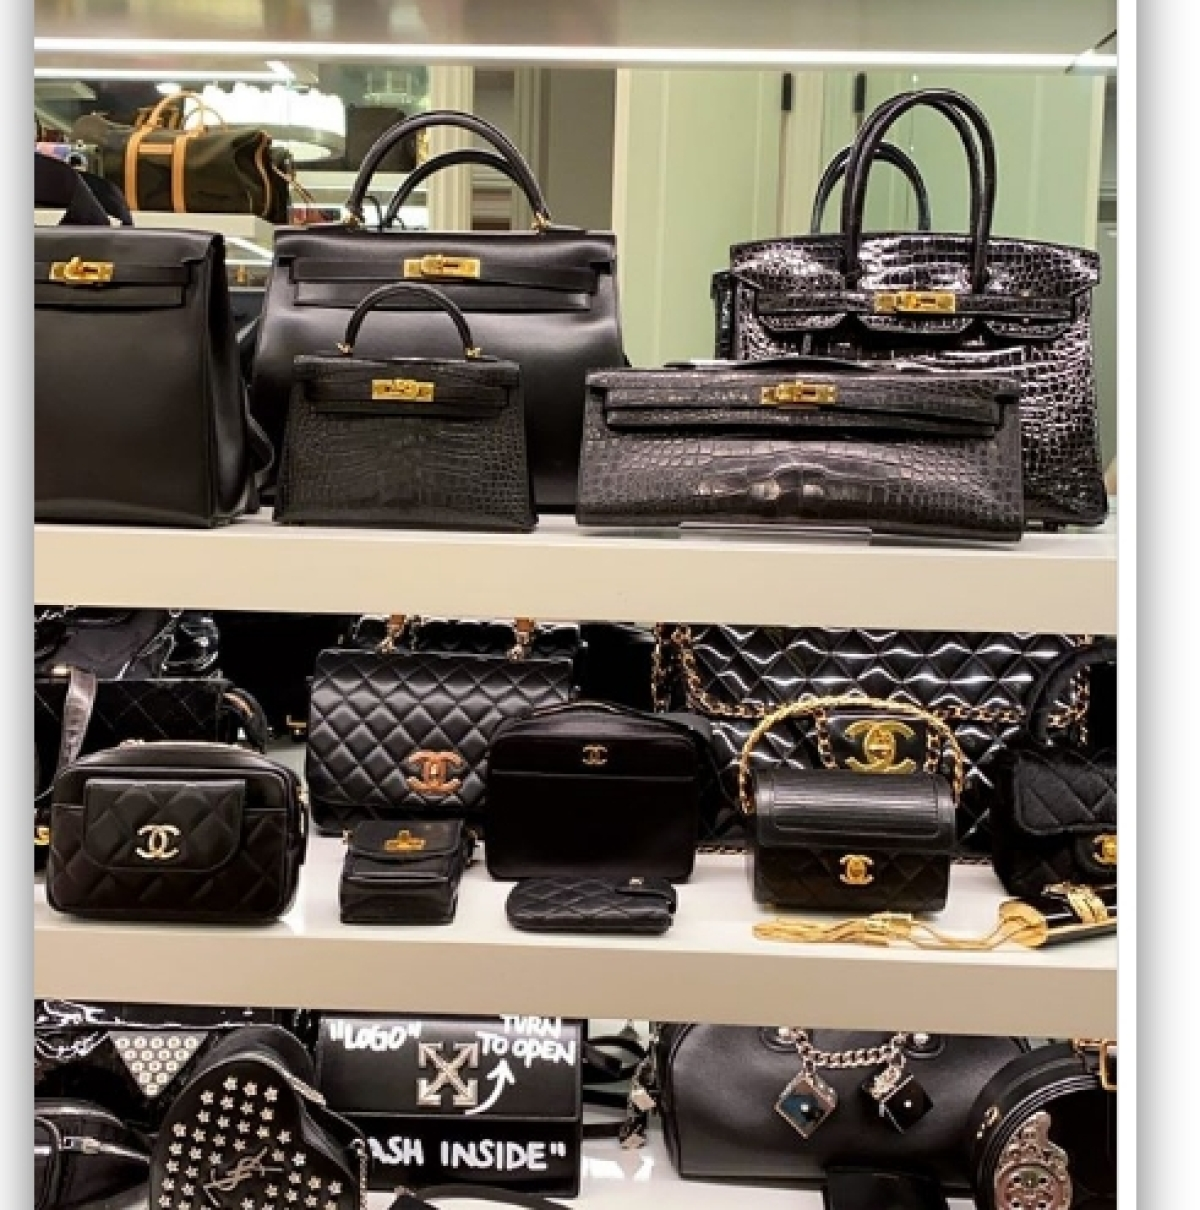 Kylie Jenner gives a glimpse of her lavish purse collections featuring rare Hermes handbags